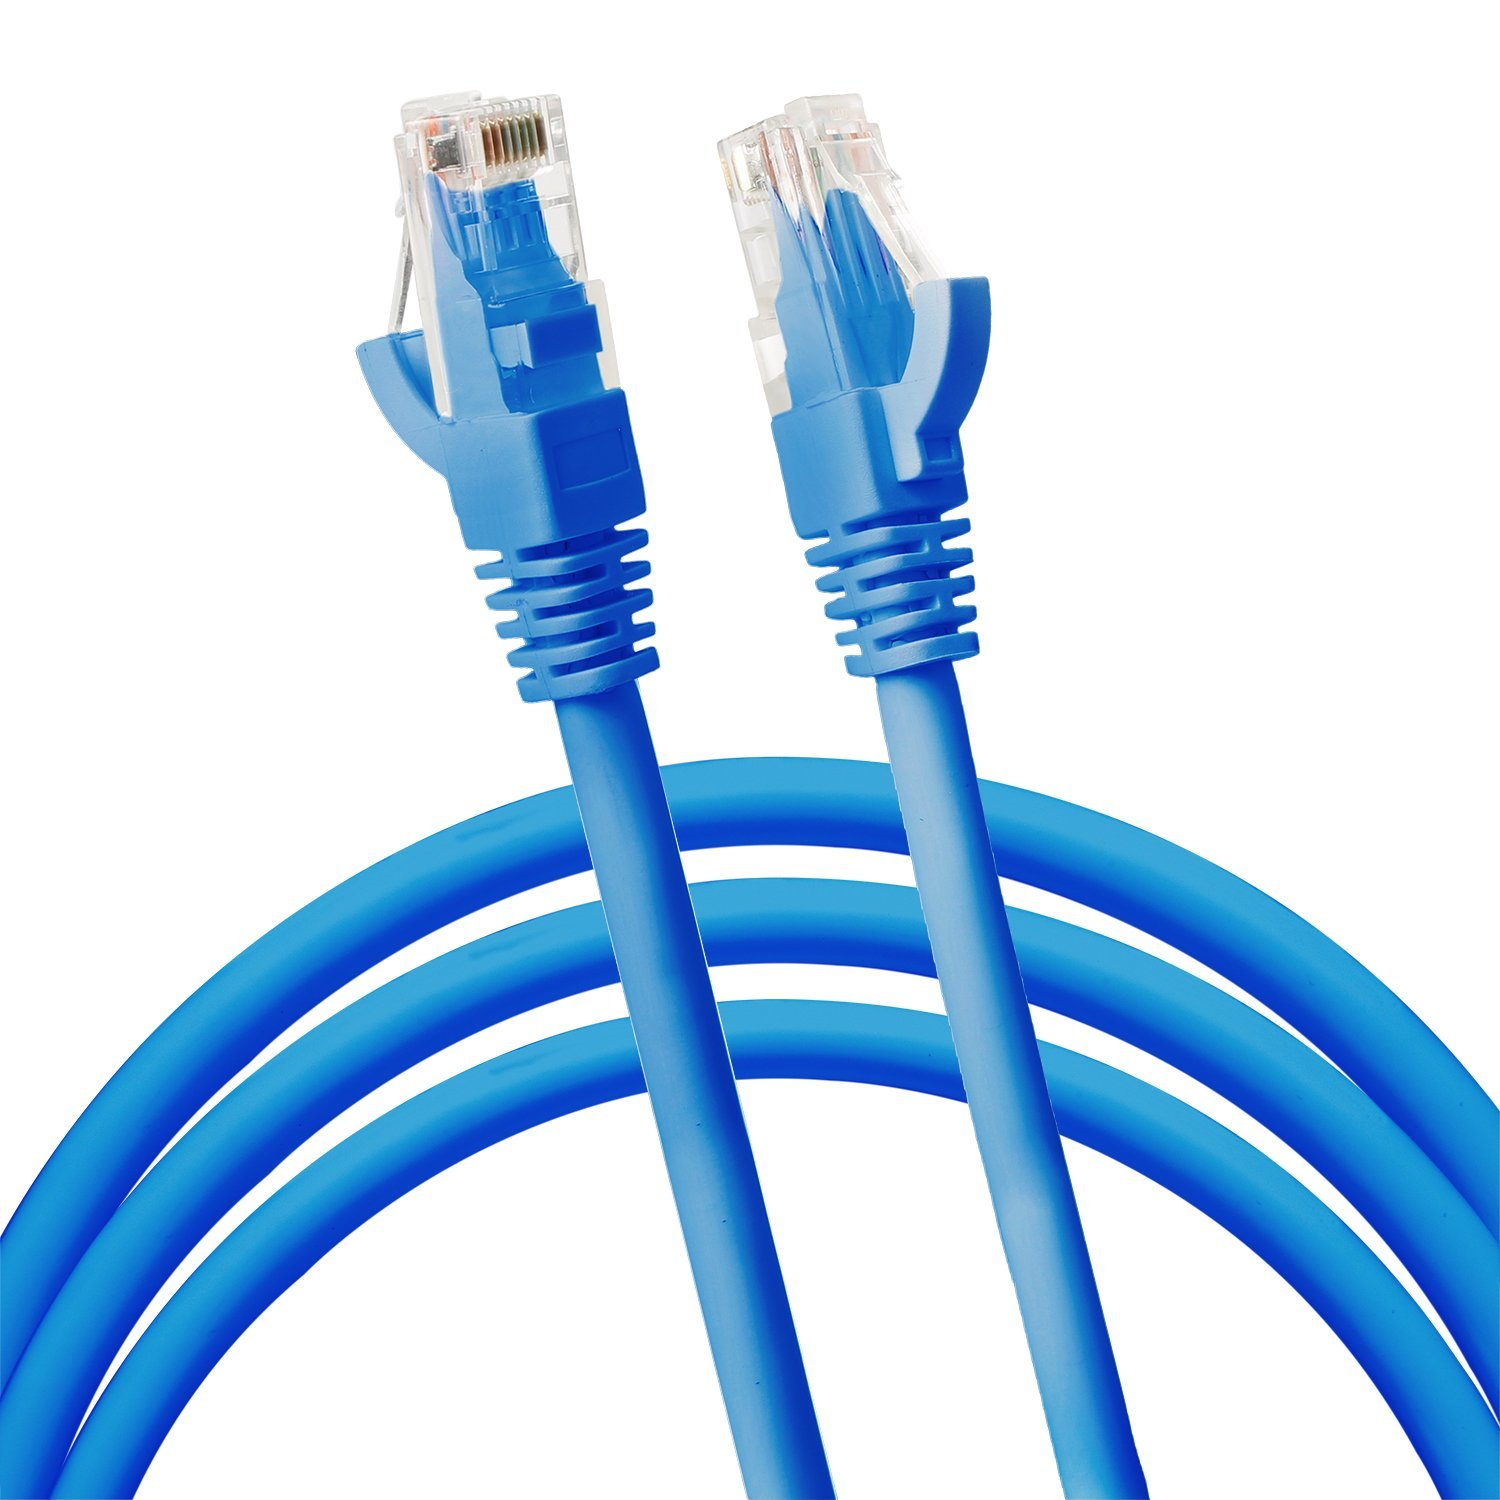 Jumbl Cat6 RJ45 Fast Ethernet Network Cable - 5 Feet Blue